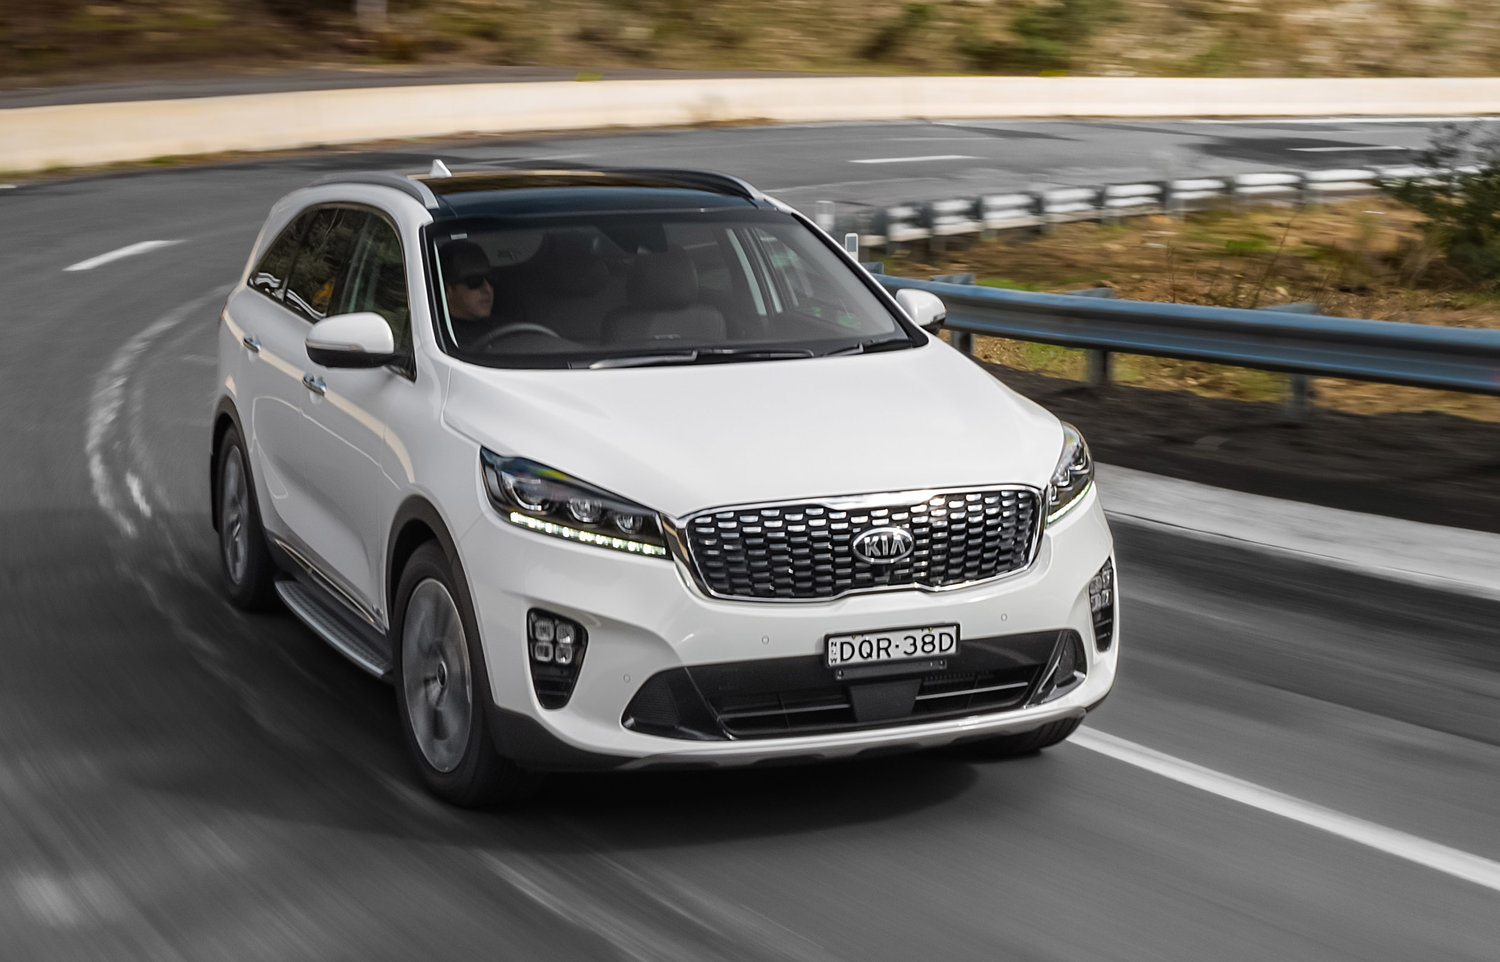 Kia Sorento Review Buyers Guide Auto Expert By John Cadogan Fuel Filter Replacement Save Thousands On Your Next New Car